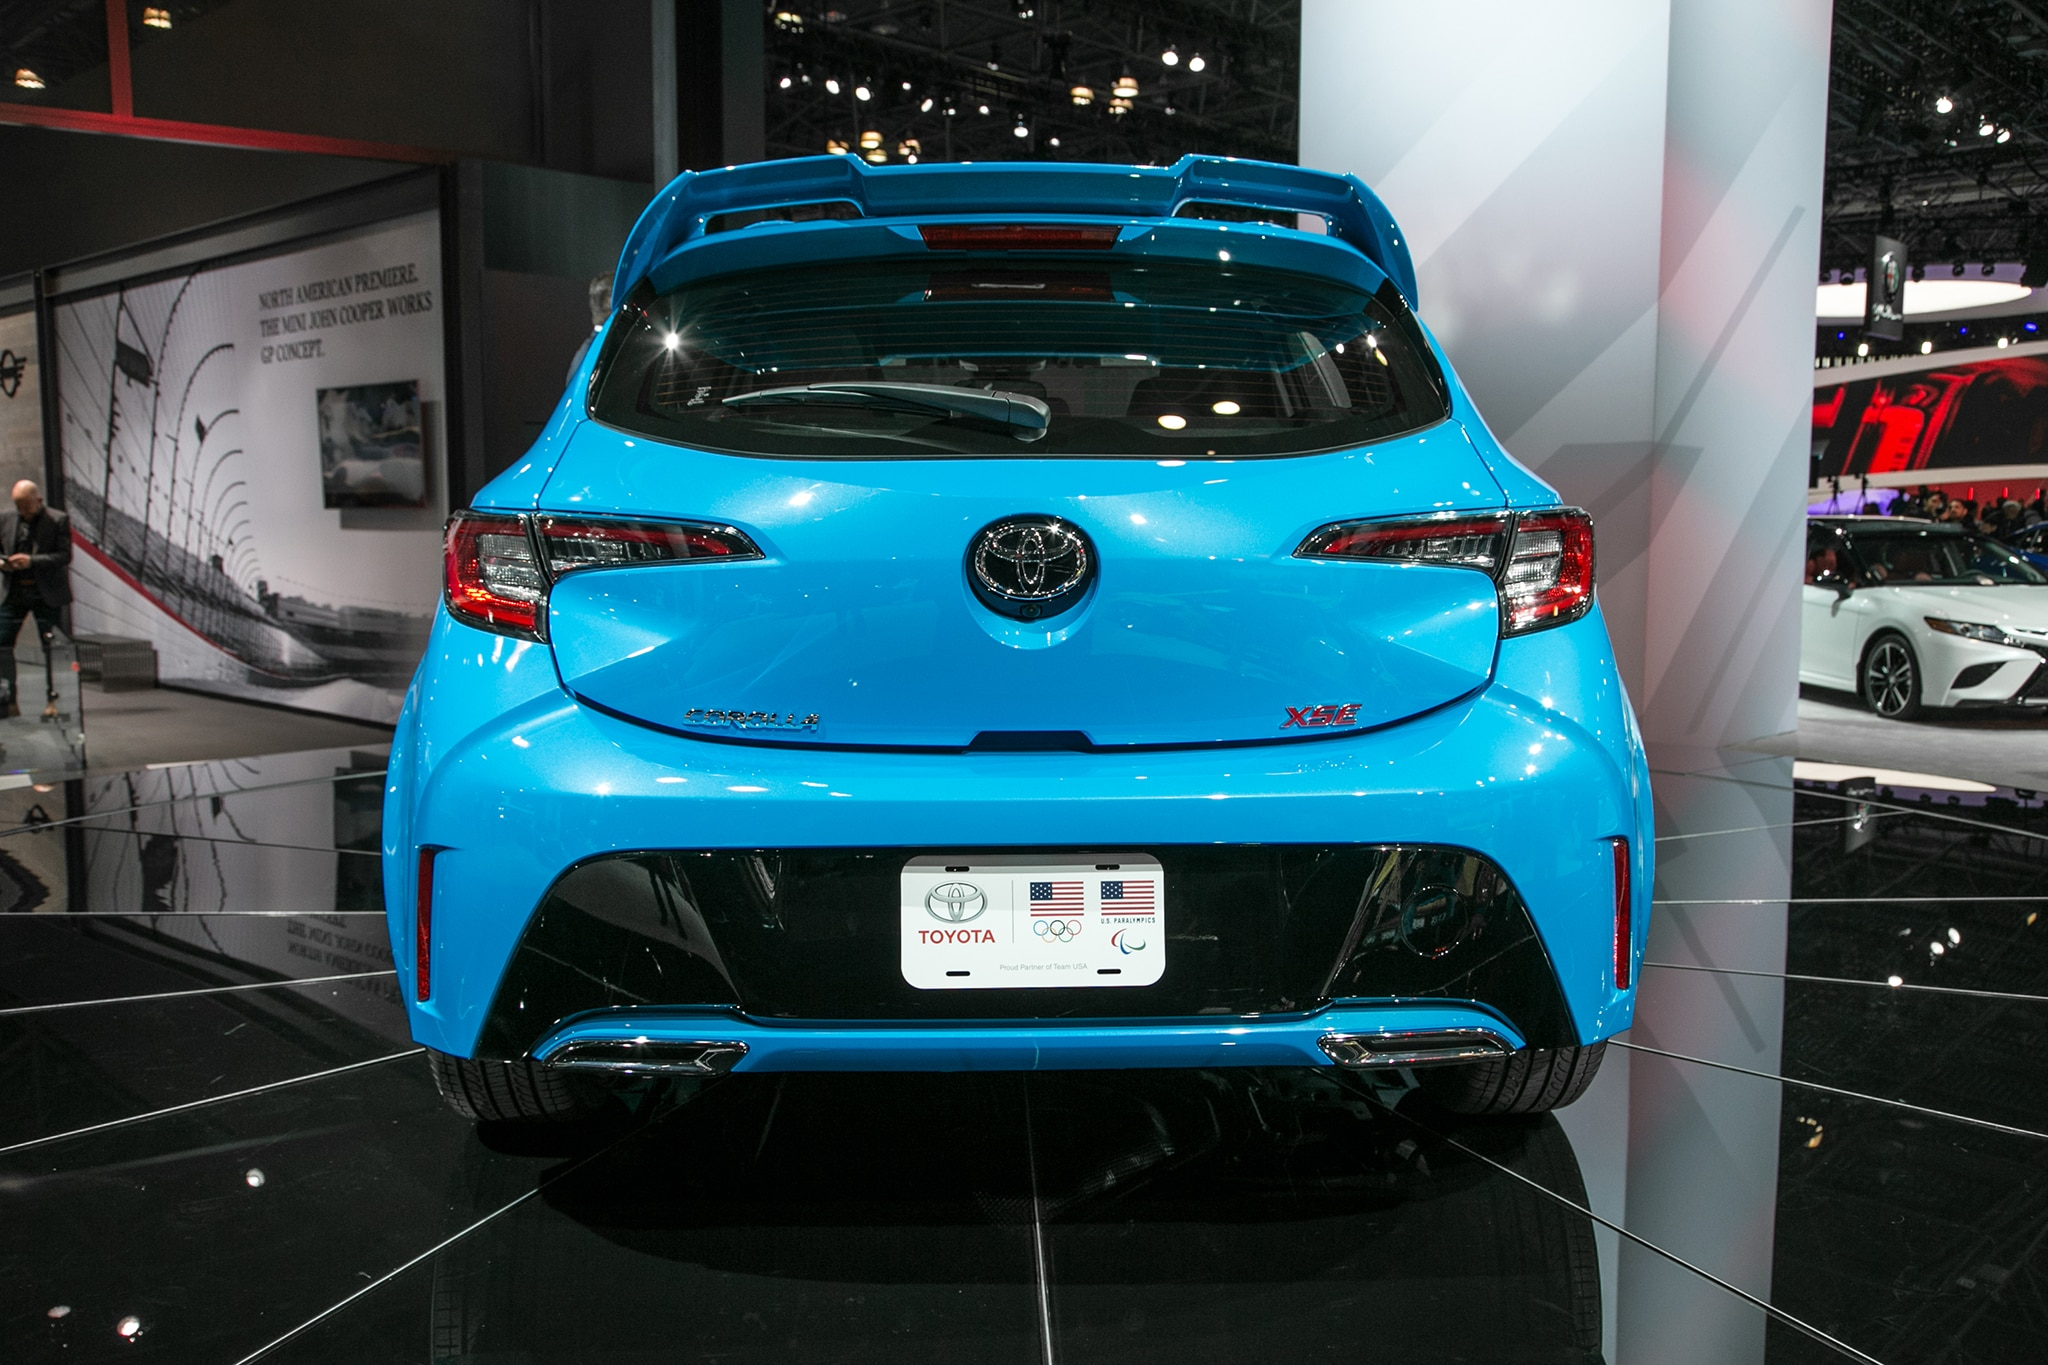 2019 Toyota Corolla Hatchback Hatches Outside Of Javits Center